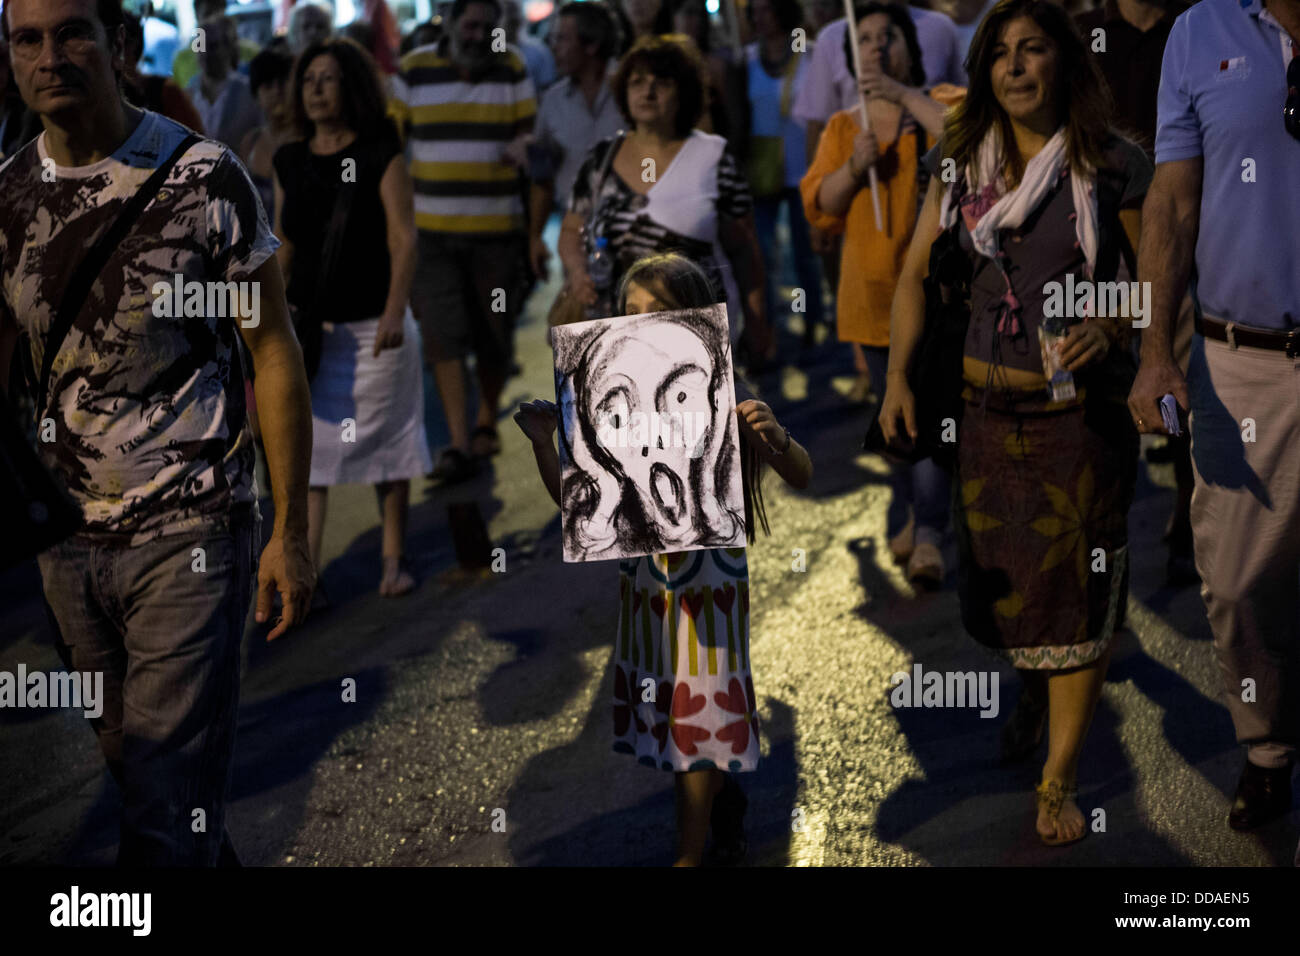 Thessaloniki, Greece. 29th Aug, 2013. Protest march from Primary Private and Public Unions of Thessaloniki with Stock Photo